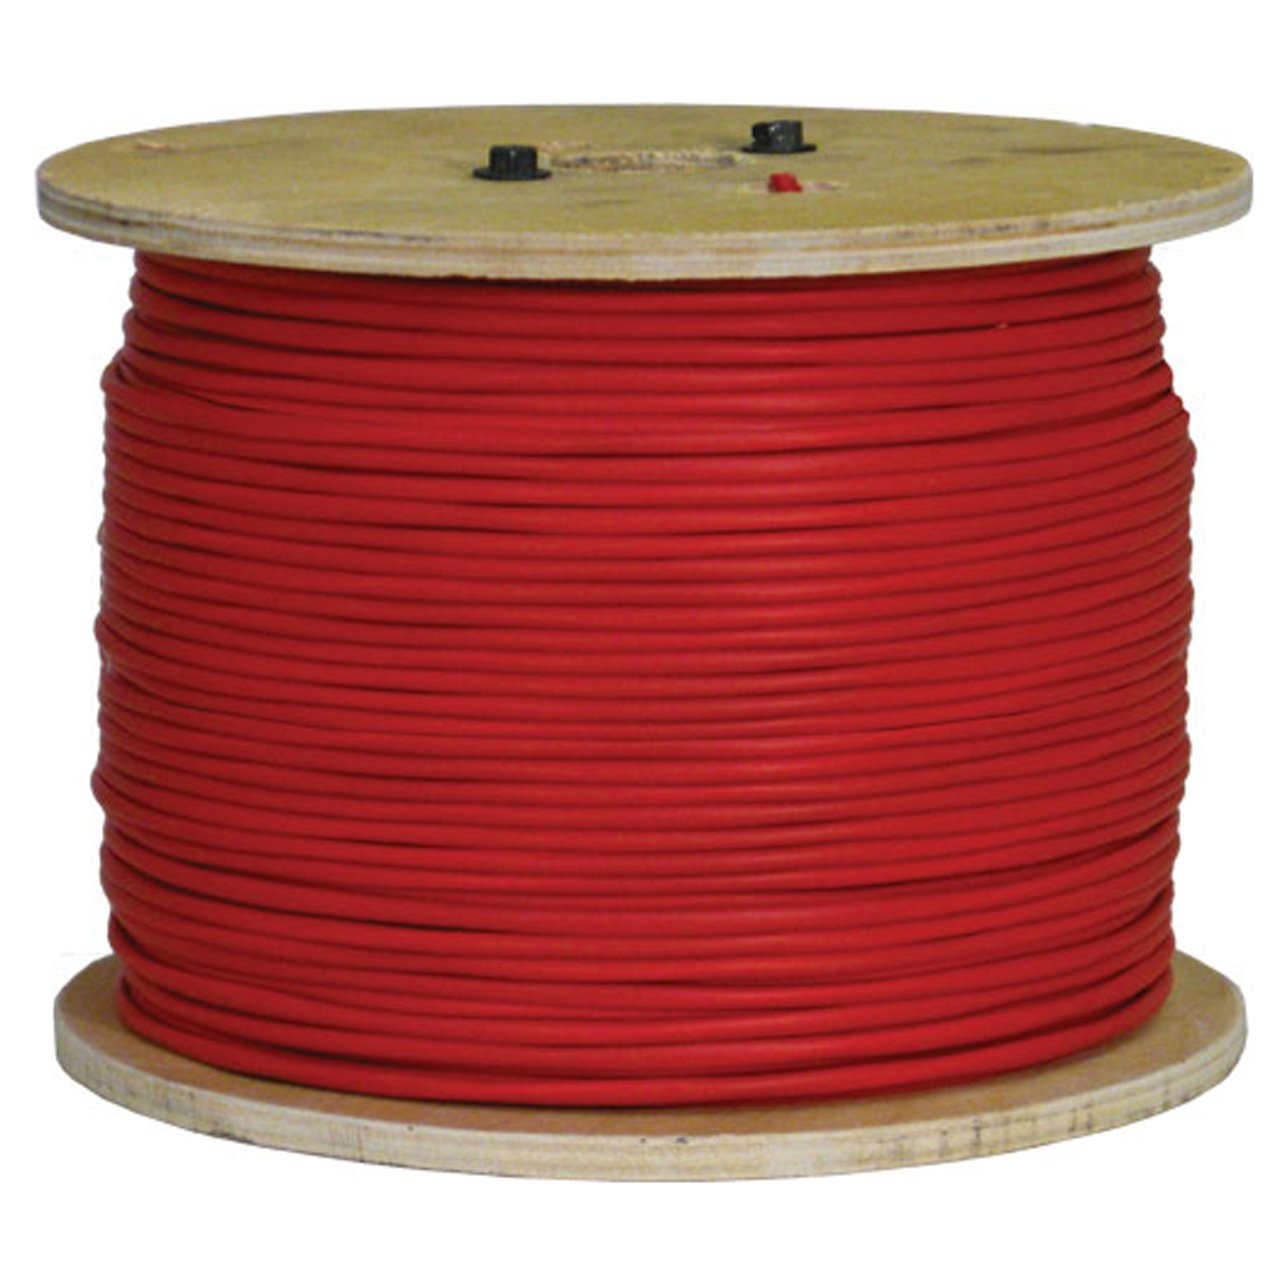 Vertical Cable Fire Alarm Cable, 16 AWG, 2 Conductor, Solid, Unshielded, FPLP (Plenum), 1000ft Spool, Red - Made in USA